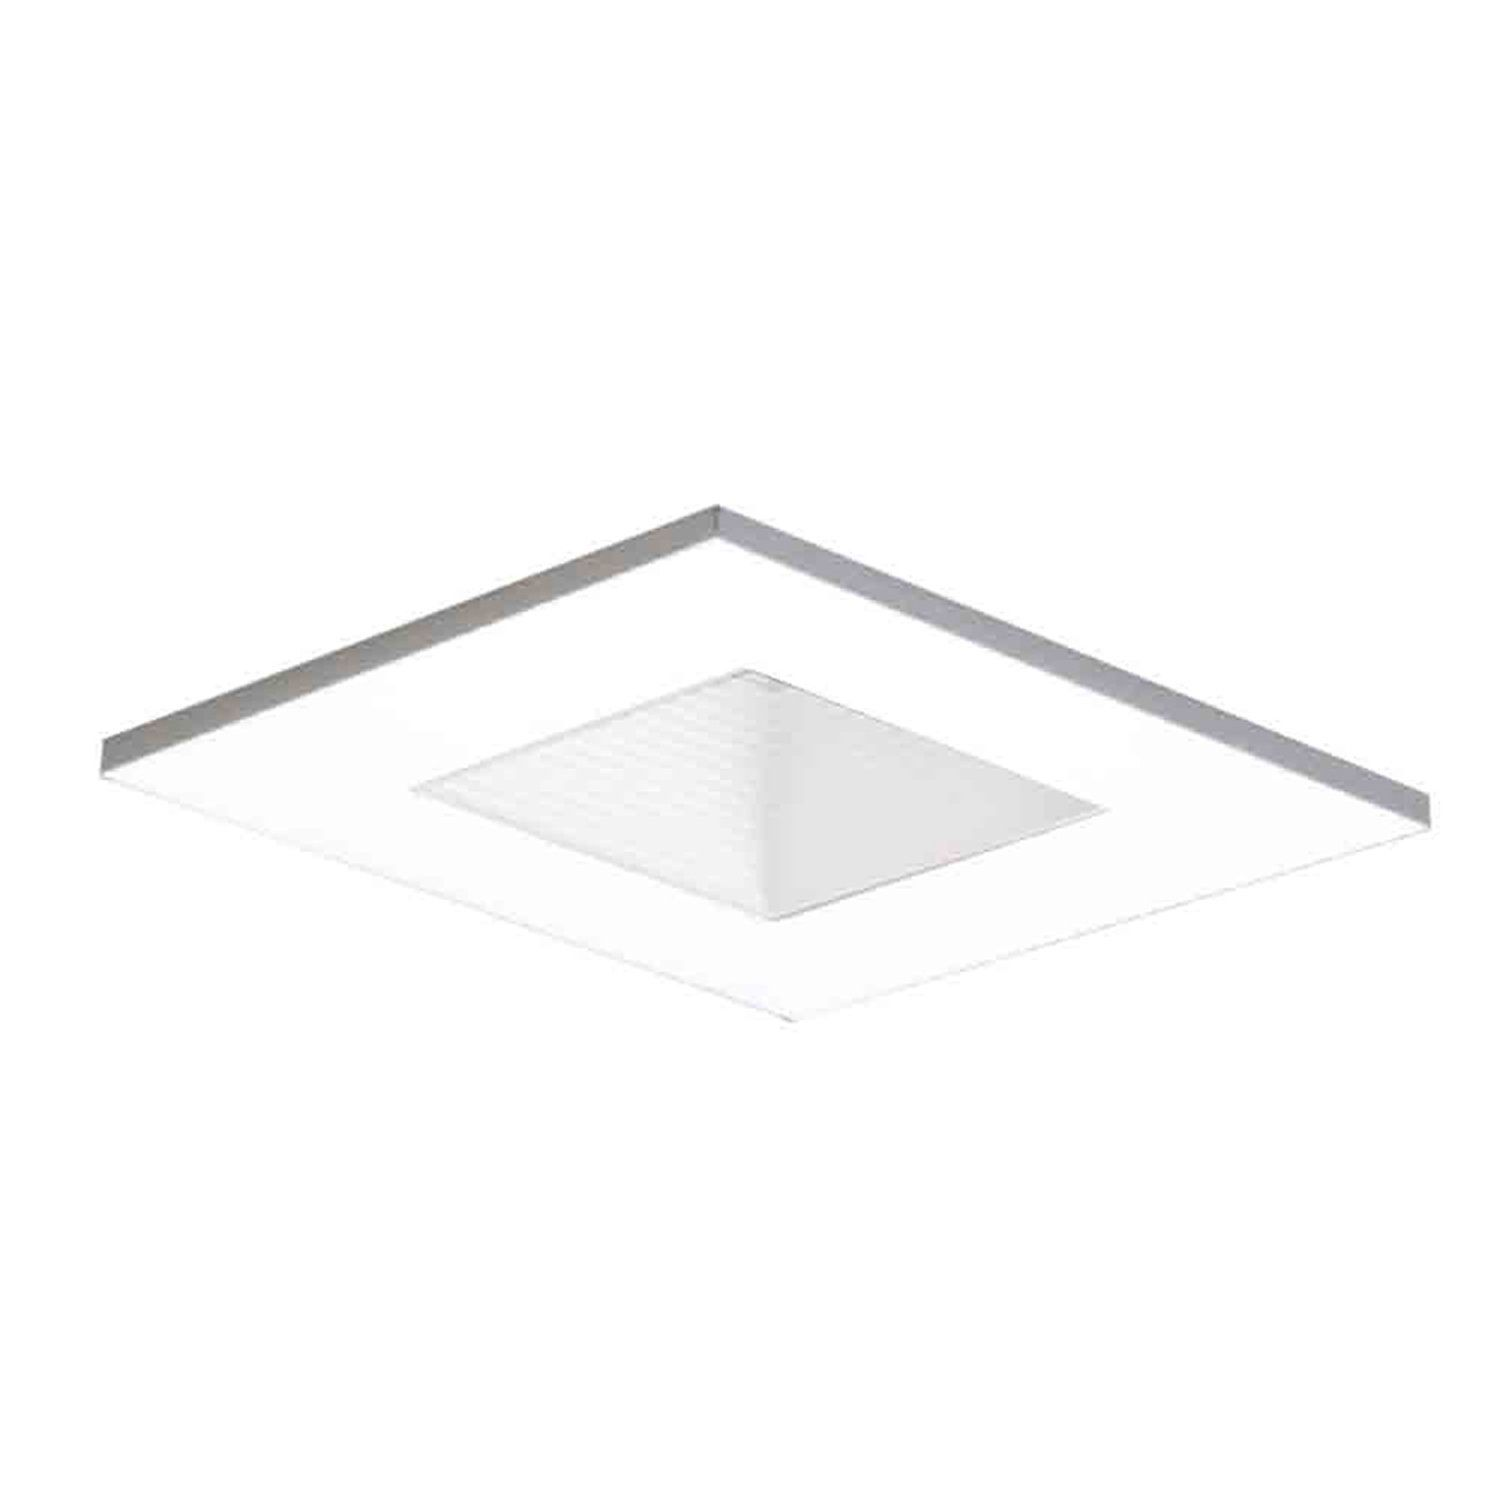 Halo Recessed 3012WHWB 3-Inch 15-Degree Trim Lensed Square Shower Light with Baffle, White - Recessed Light Fixture Trims - Amazon.com